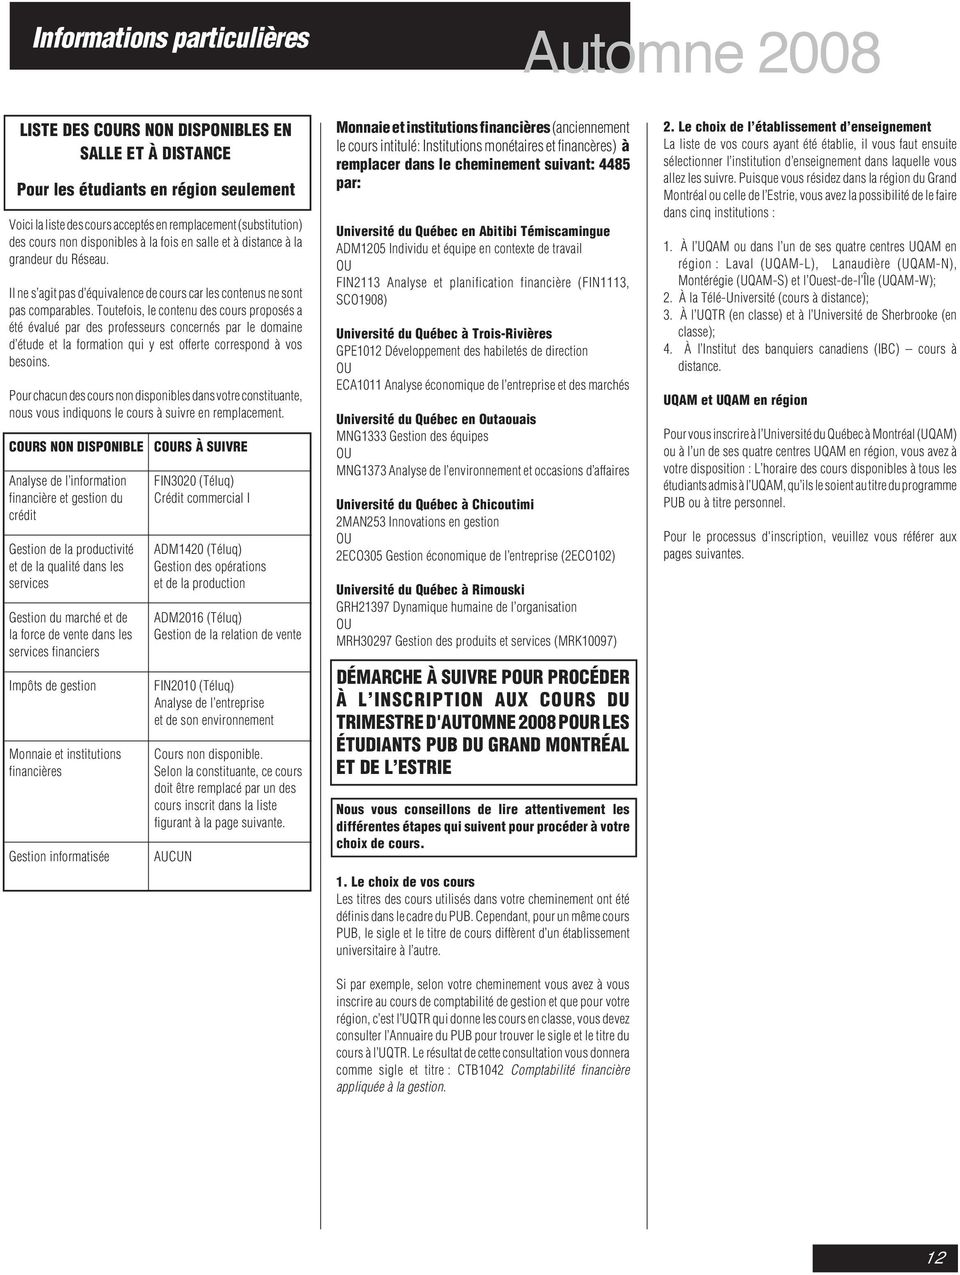 tva grille horaire 2008 pdf